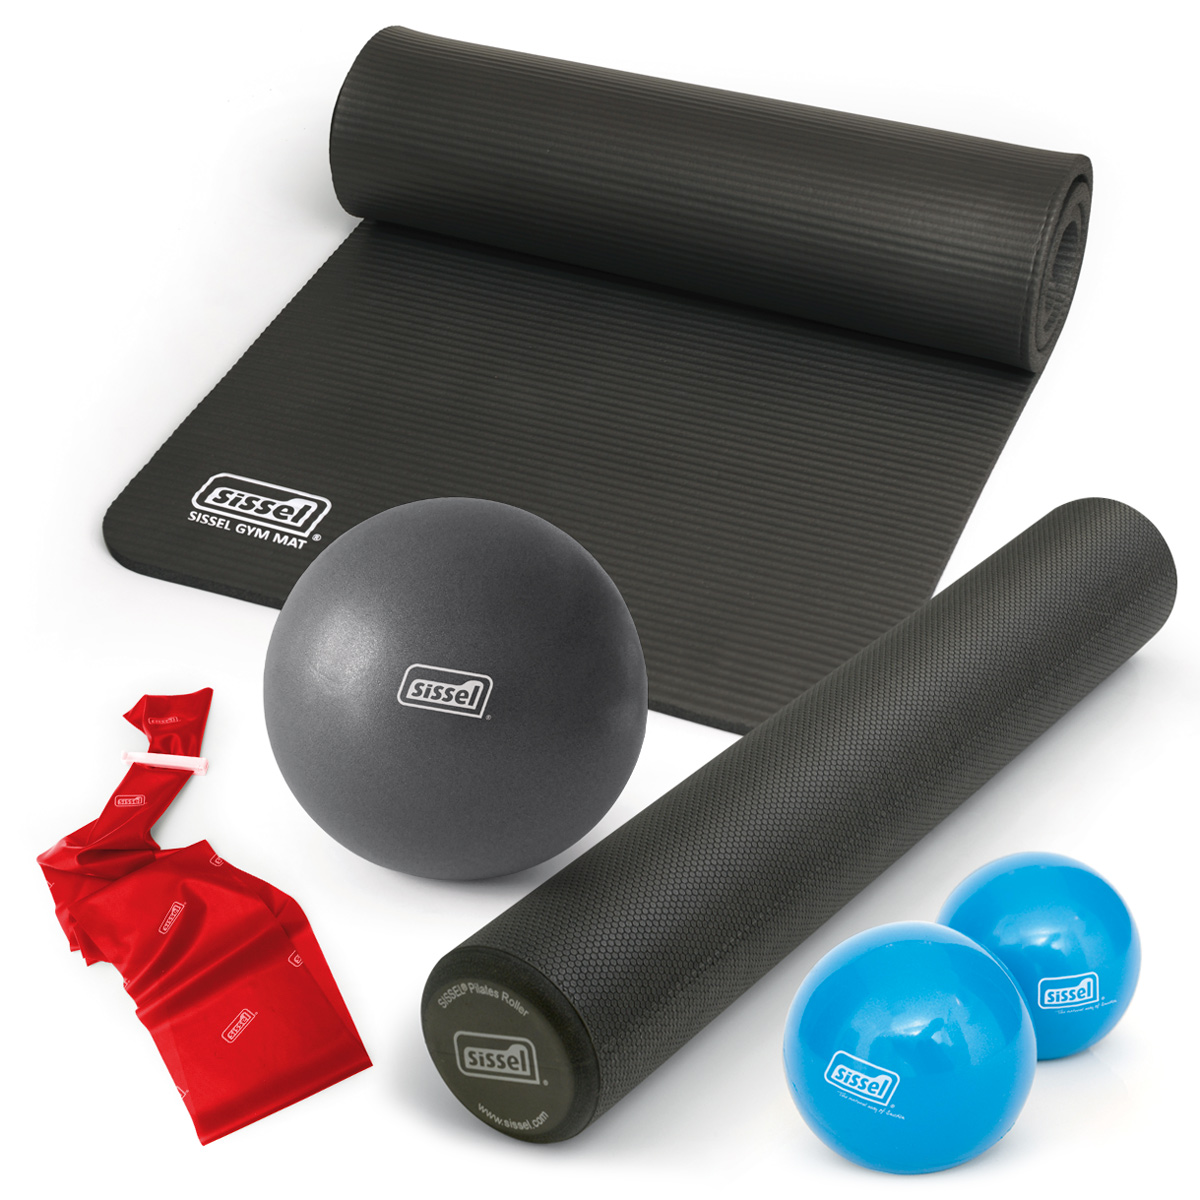 HOME KIT PILATES CASA  MAGAZZINO  ANTRACITE: Soft Ball, Rullo, Materassino, Toning Ball e Band